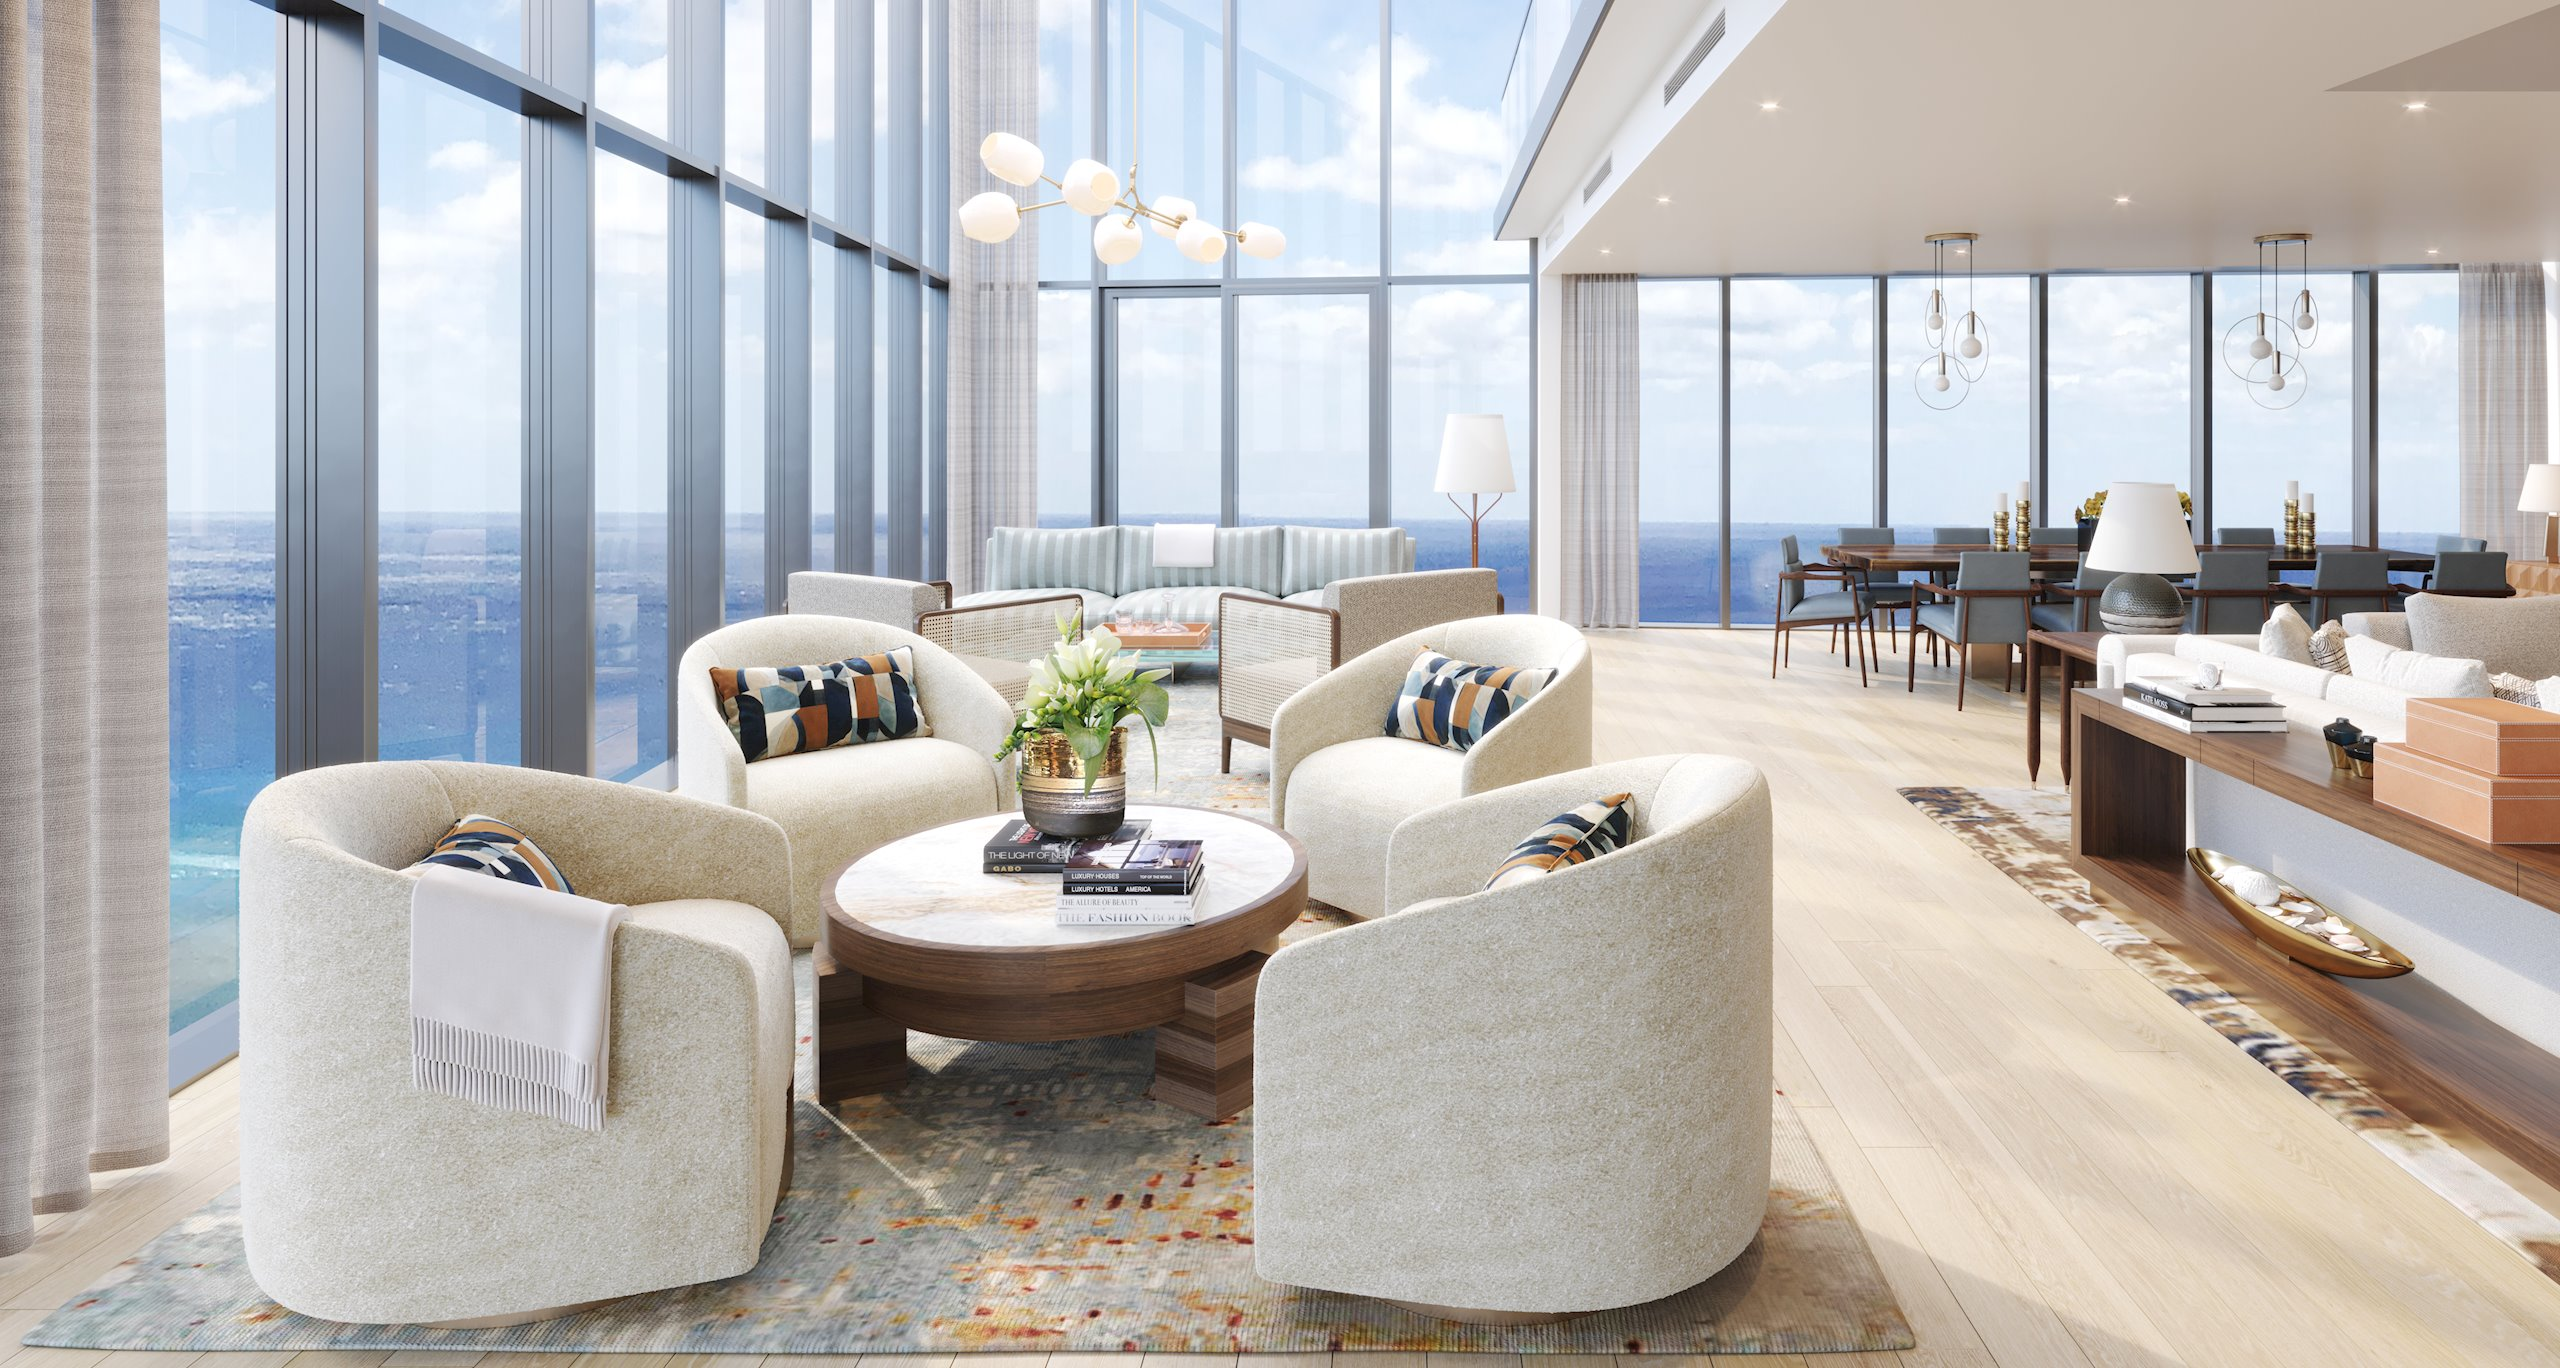 Construction will soon begin on this brand new Penthouse at The Ritz-Carlton Residence Waikiki Beach. This spectacular corner locatio...